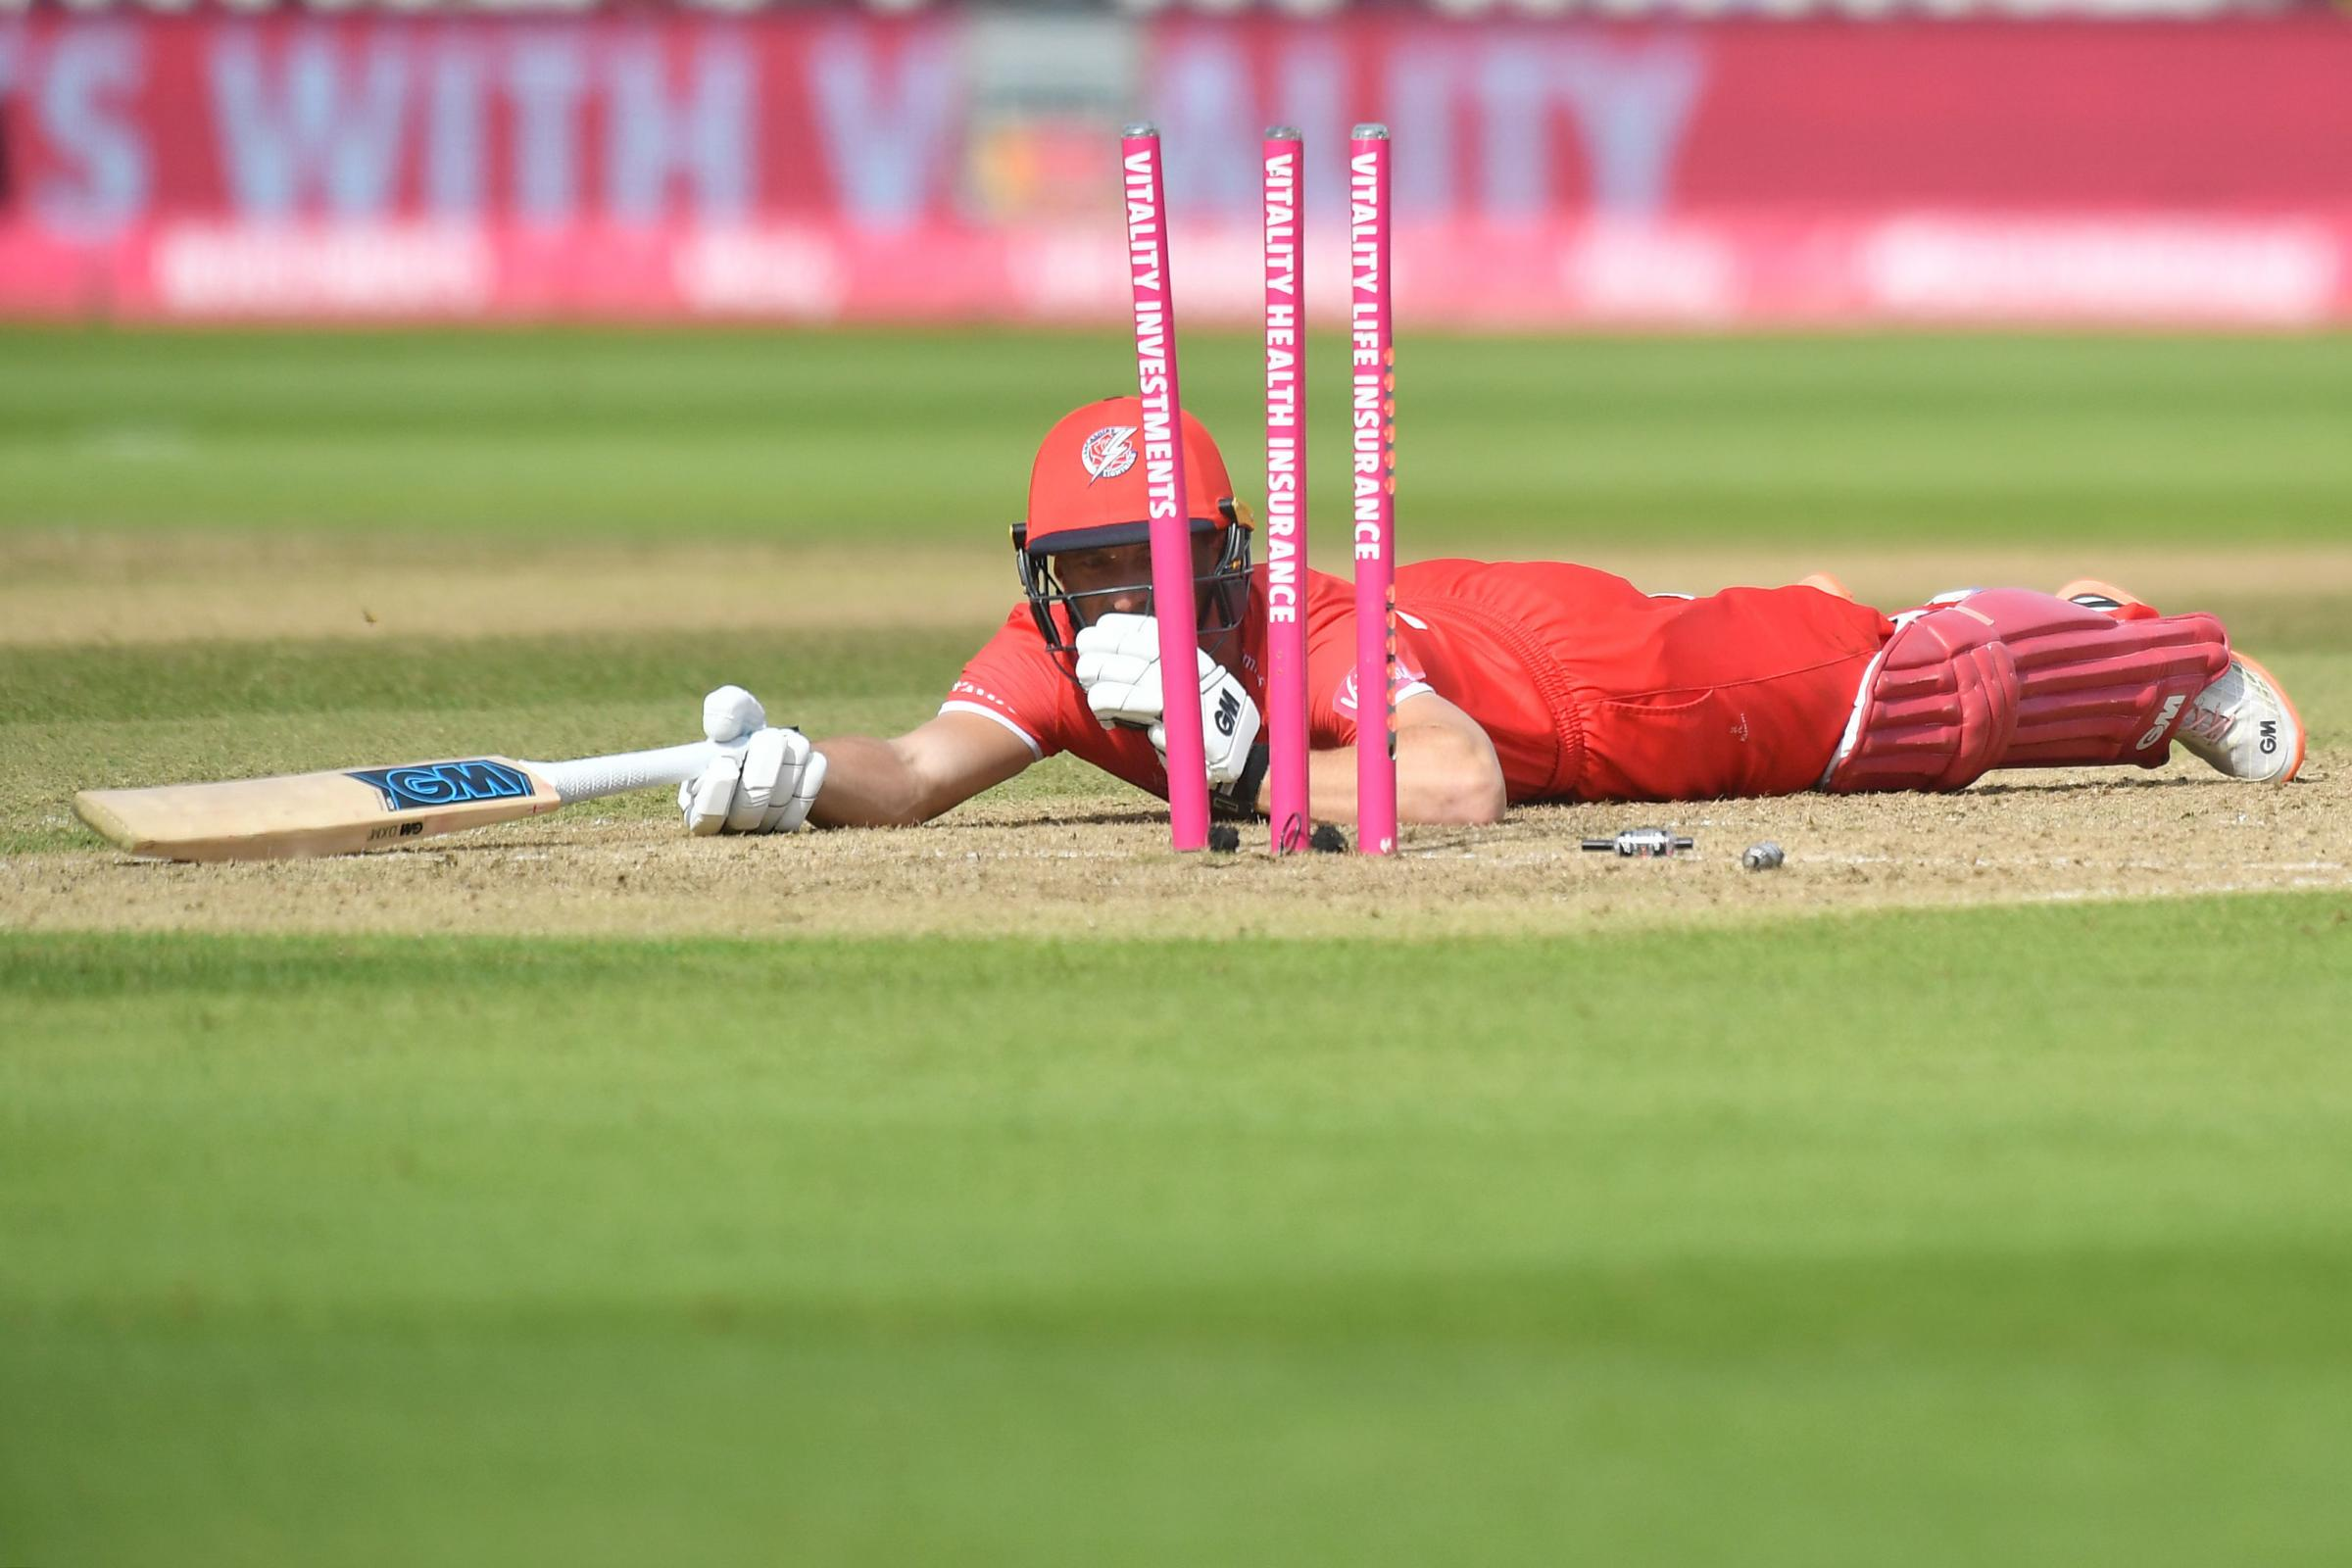 Lancashire Lightning's Dane Vilas is run out by Worcestershire Rapid's Ed Barnard (not pictured) during the Vitality T20 Blast Semi Final match on Finals Day at Edgbaston, Birmingham. PRESS ASSOCIATION Photo. Picture date: Saturday